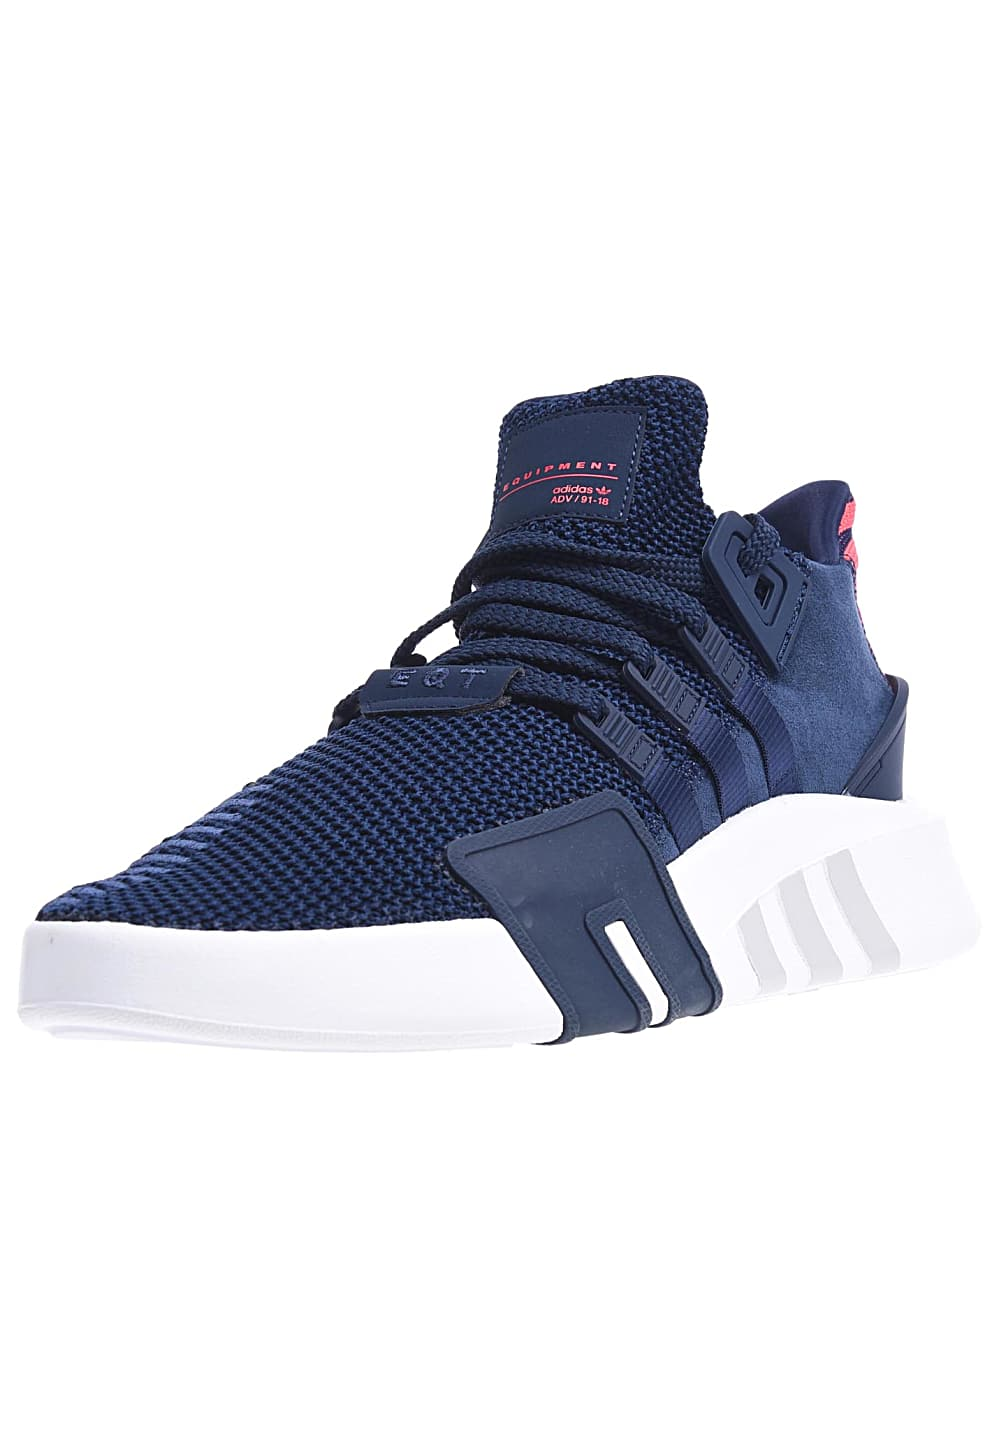 1a34bdb99ce Next. -10%. This product is currently out of stock. ADIDAS ORIGINALS. Eqt  Bask Adv - Sneakers ...